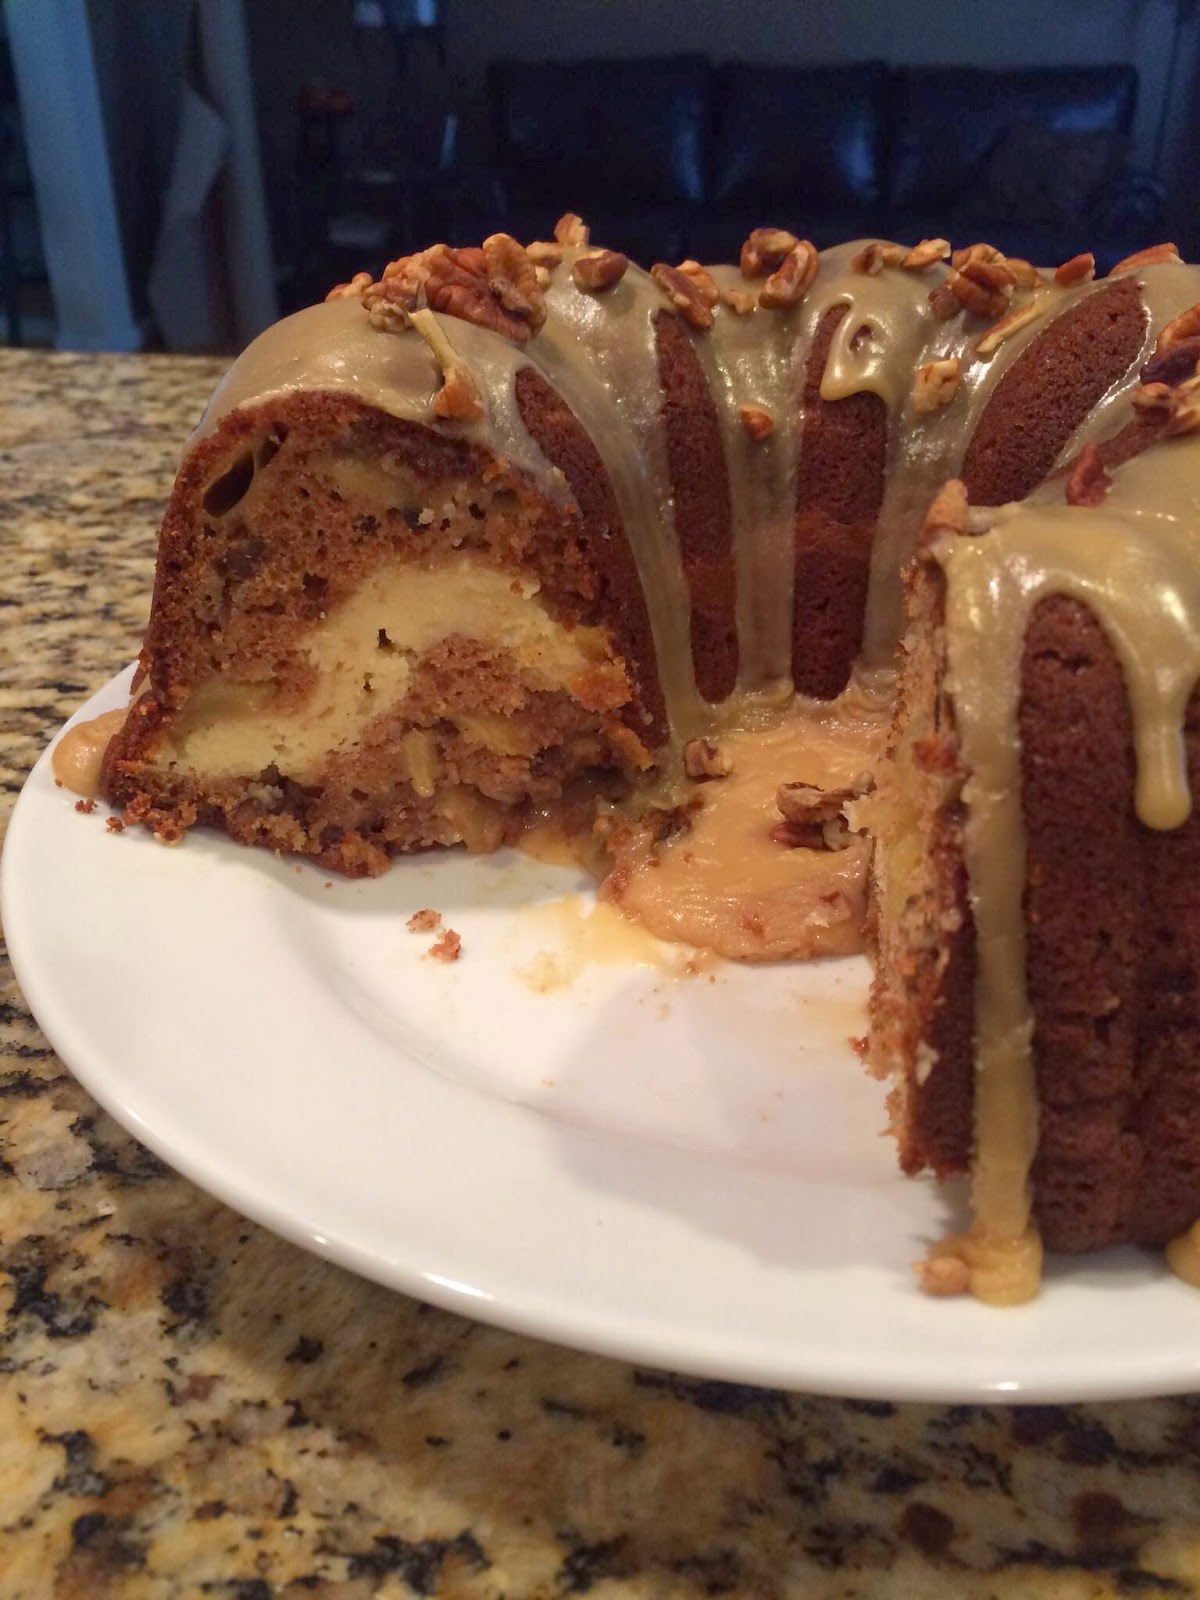 Holiday Baking Southern Apple Cream Cheese Bundt Cake